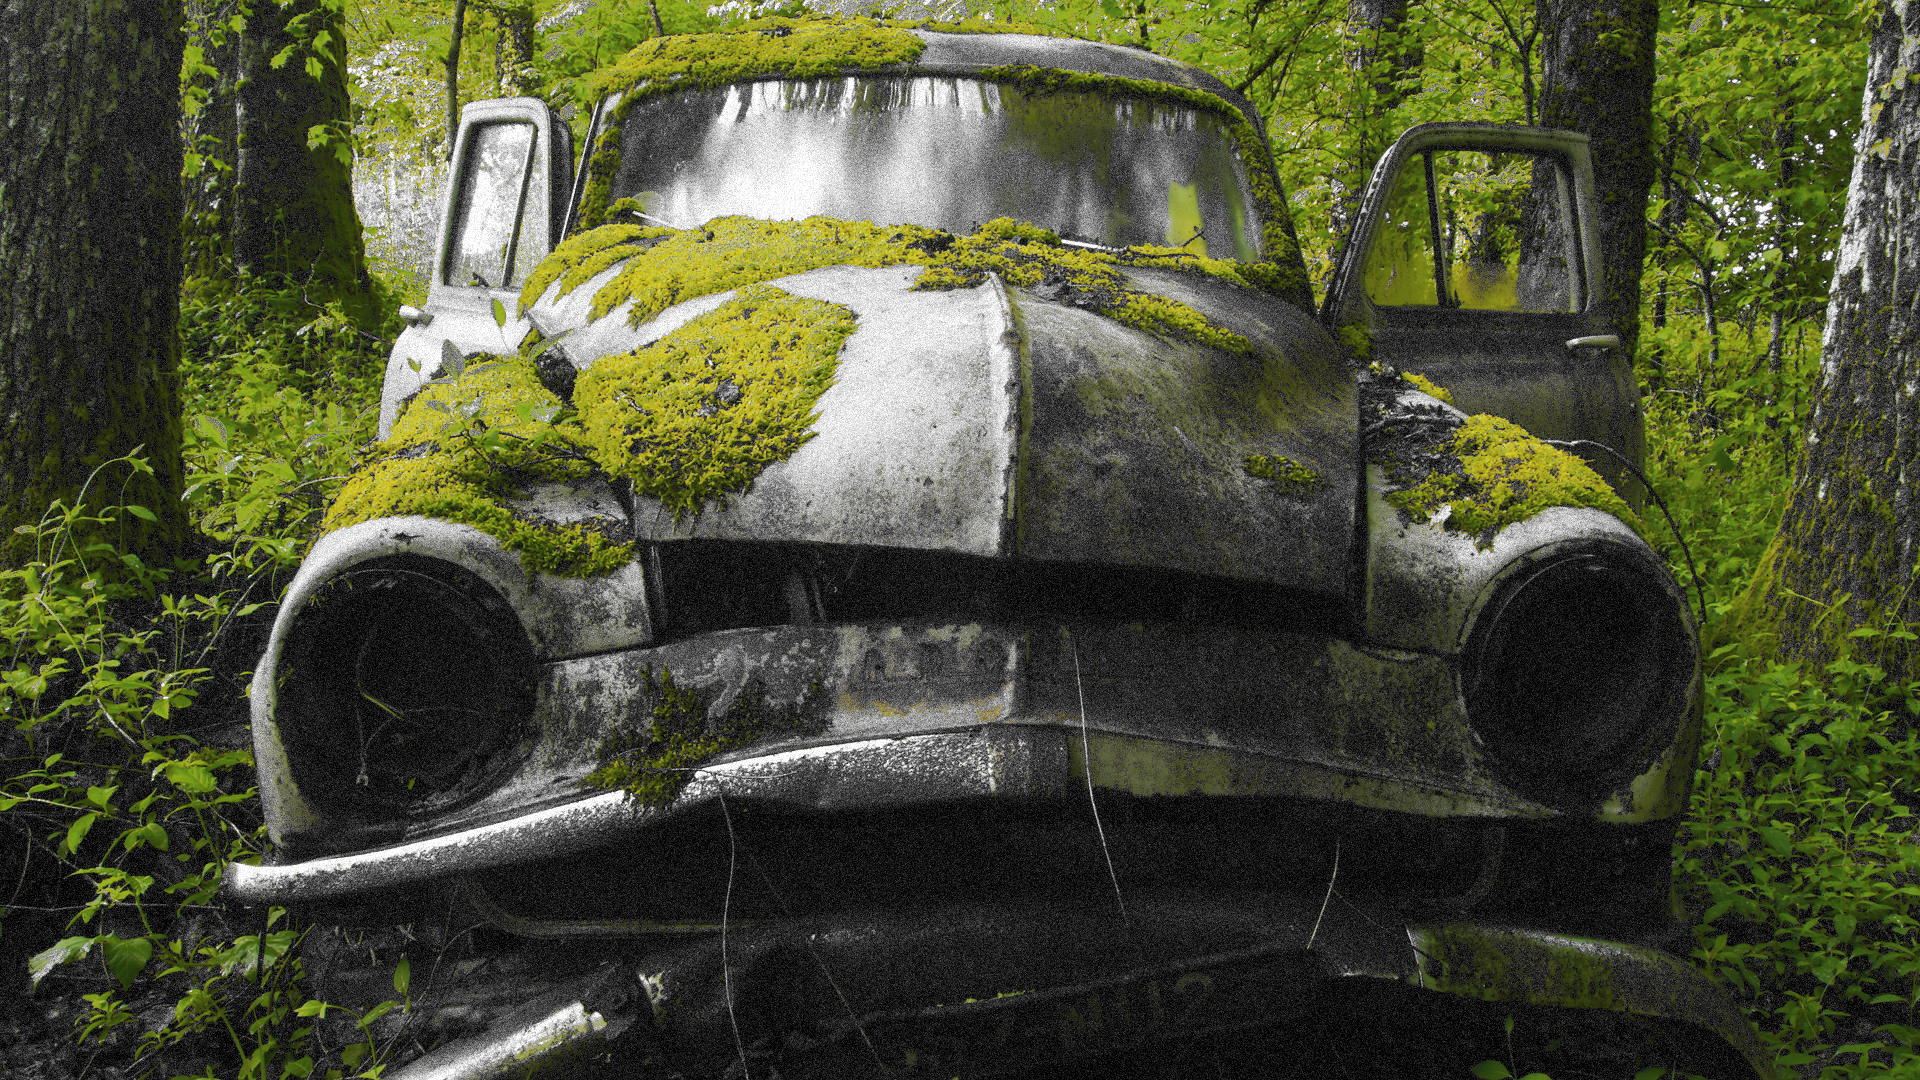 Old Rusty Car Wallpapers Android With Hd Desktop 1920x1080 Px 3 76 Mb Car Covers Car Old Cars